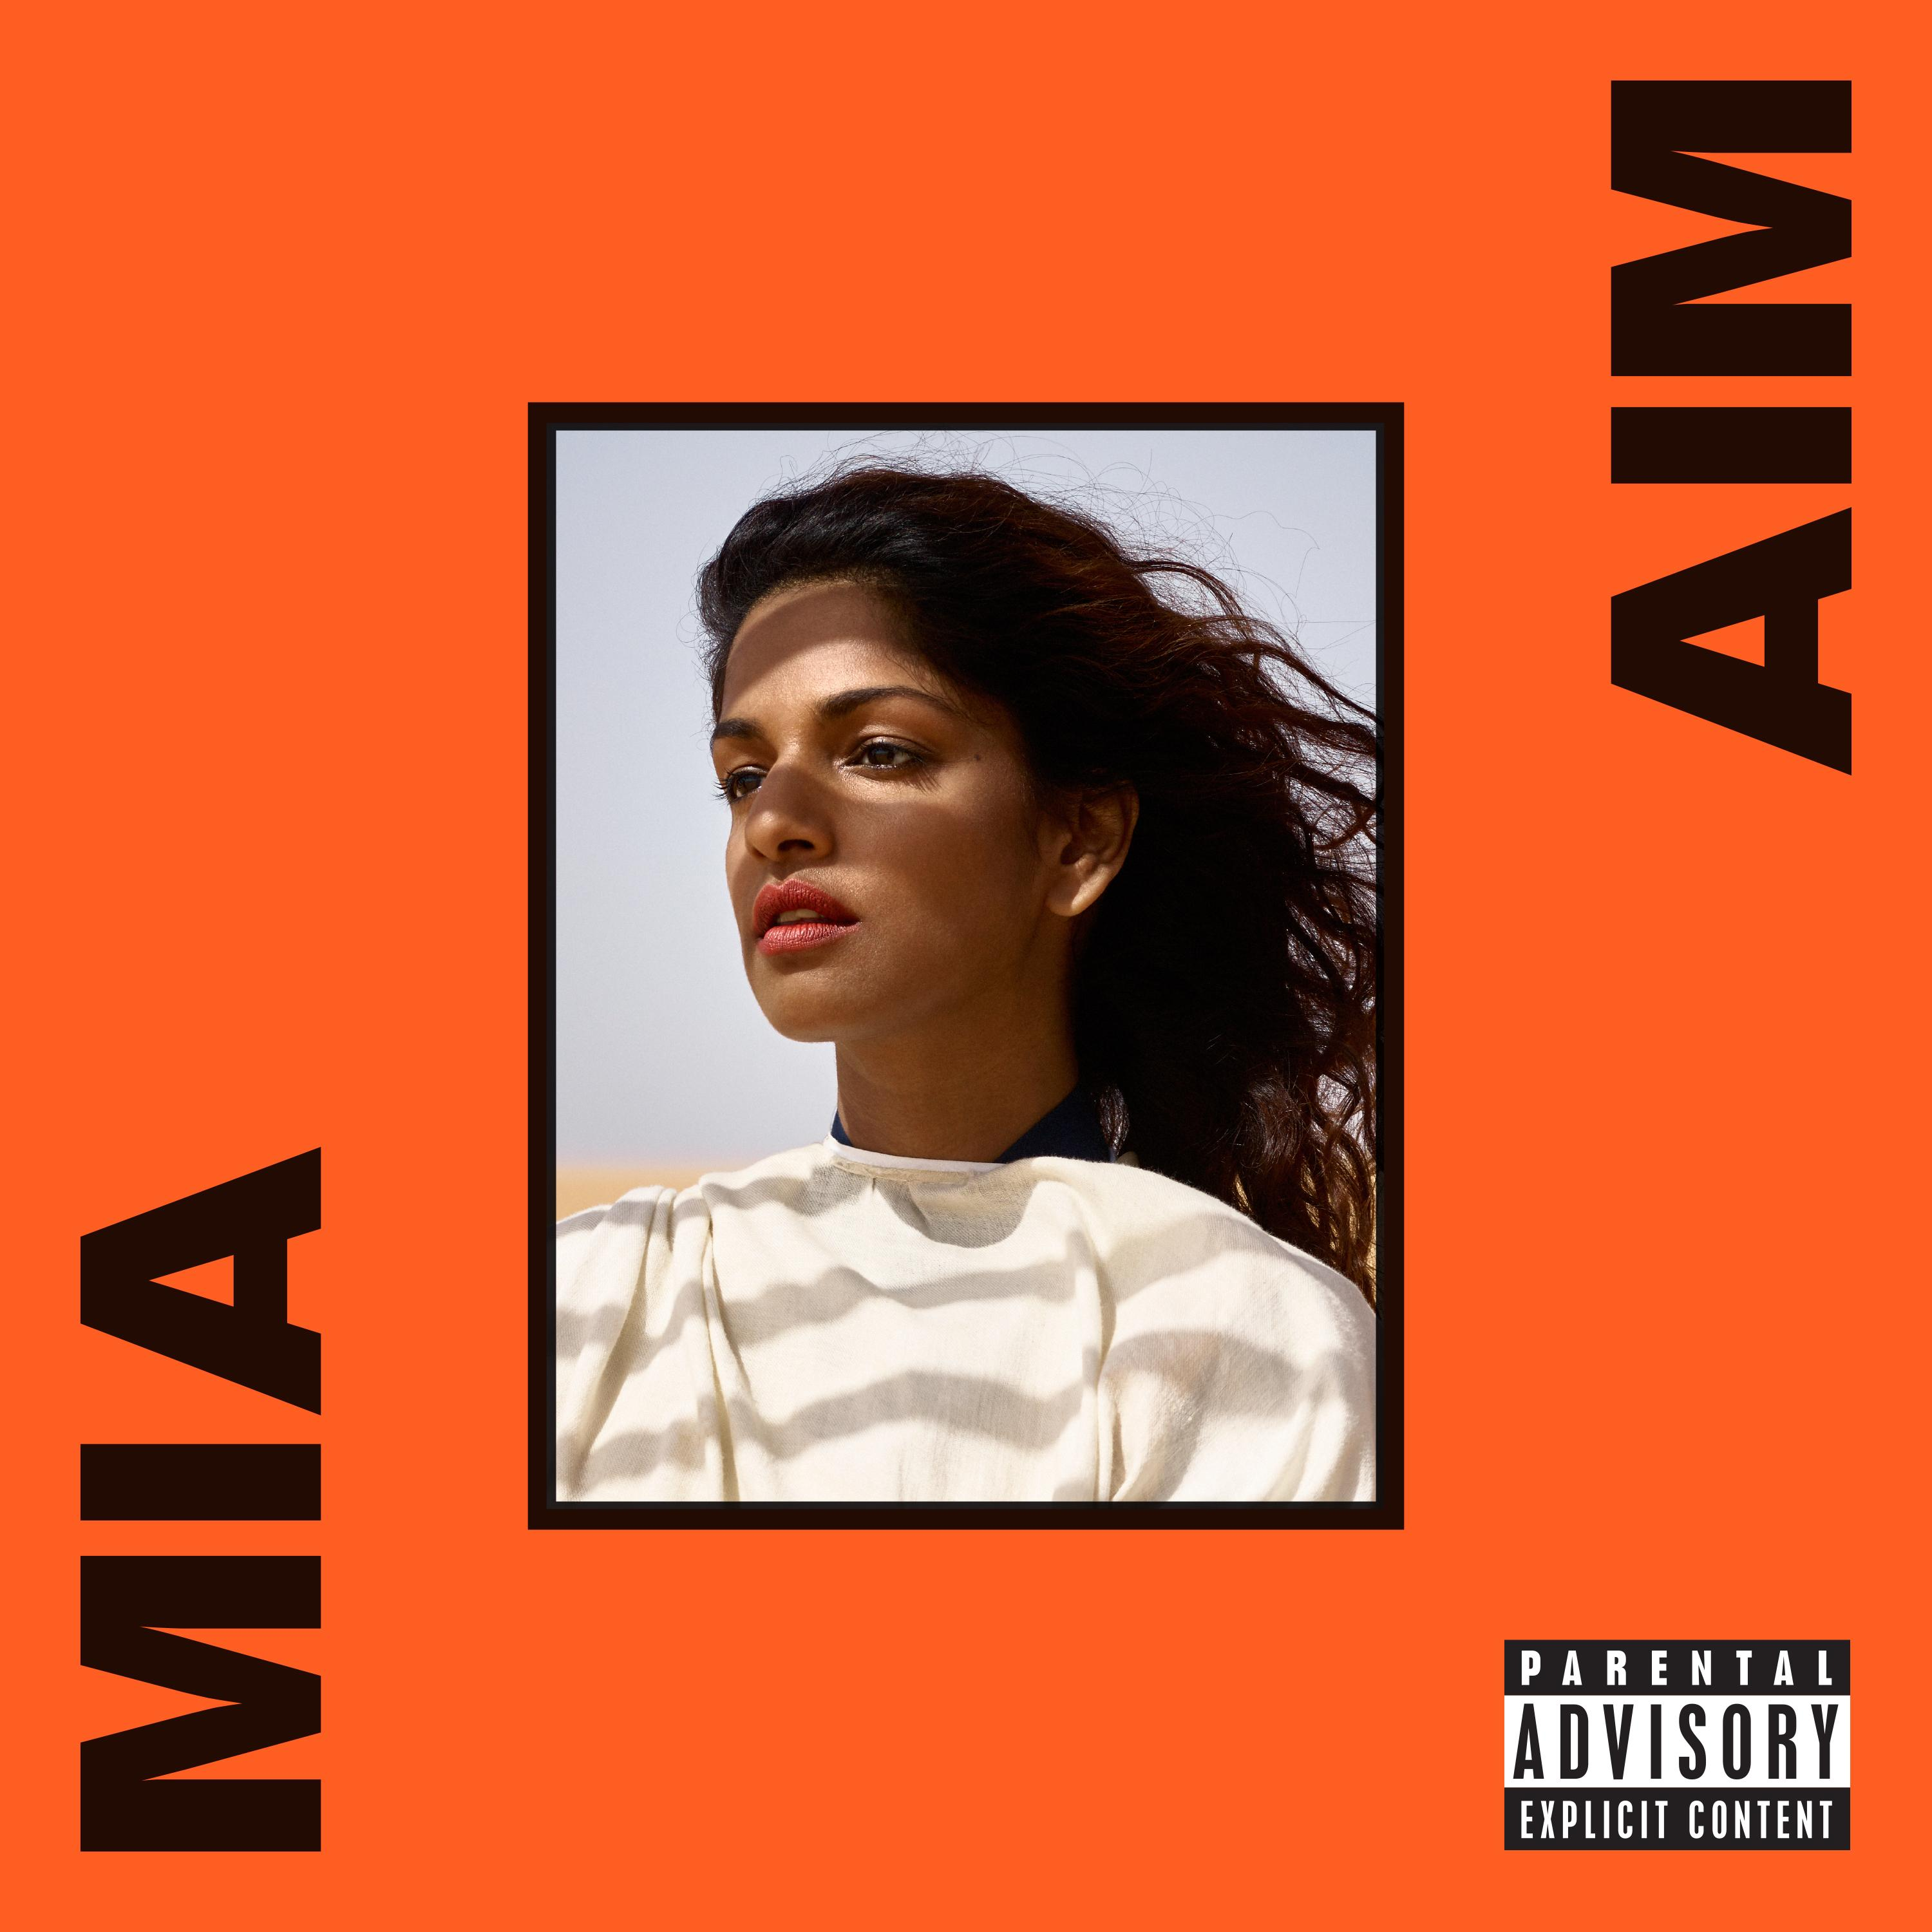 'AIM' by M.I.A. album review by Daniel Geddes. The full-length is now out via Interscope records.